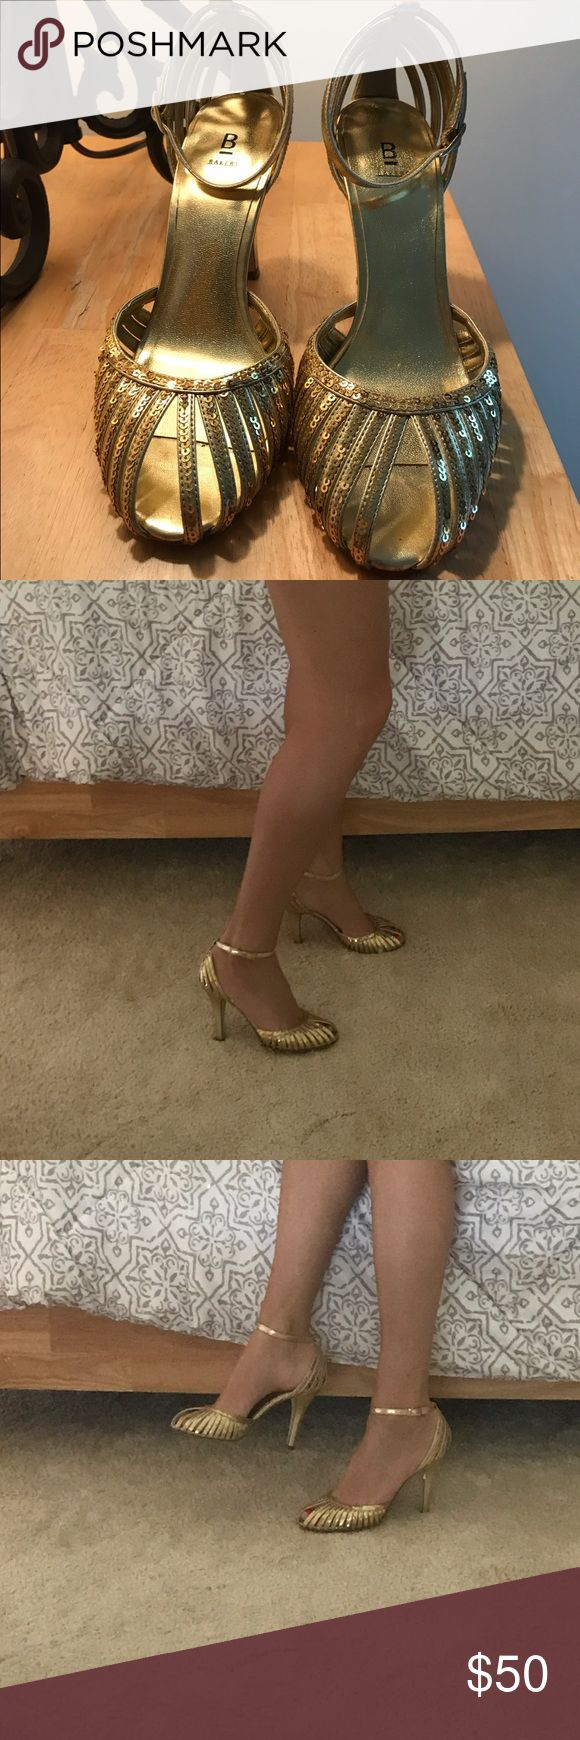 """Bakers """"Brooke"""" Gold peep toe heels ankle strap Sequin gold peep toe heels with ankle strap/buckle. Has a few nicks on the heels and worn once. Gorgeous shoes for wedding, prom, dance, or a night out on the town! I usually wear a size 8, but these are 7 1/2 and fit me perfectly. Bakers Shoes Heels"""